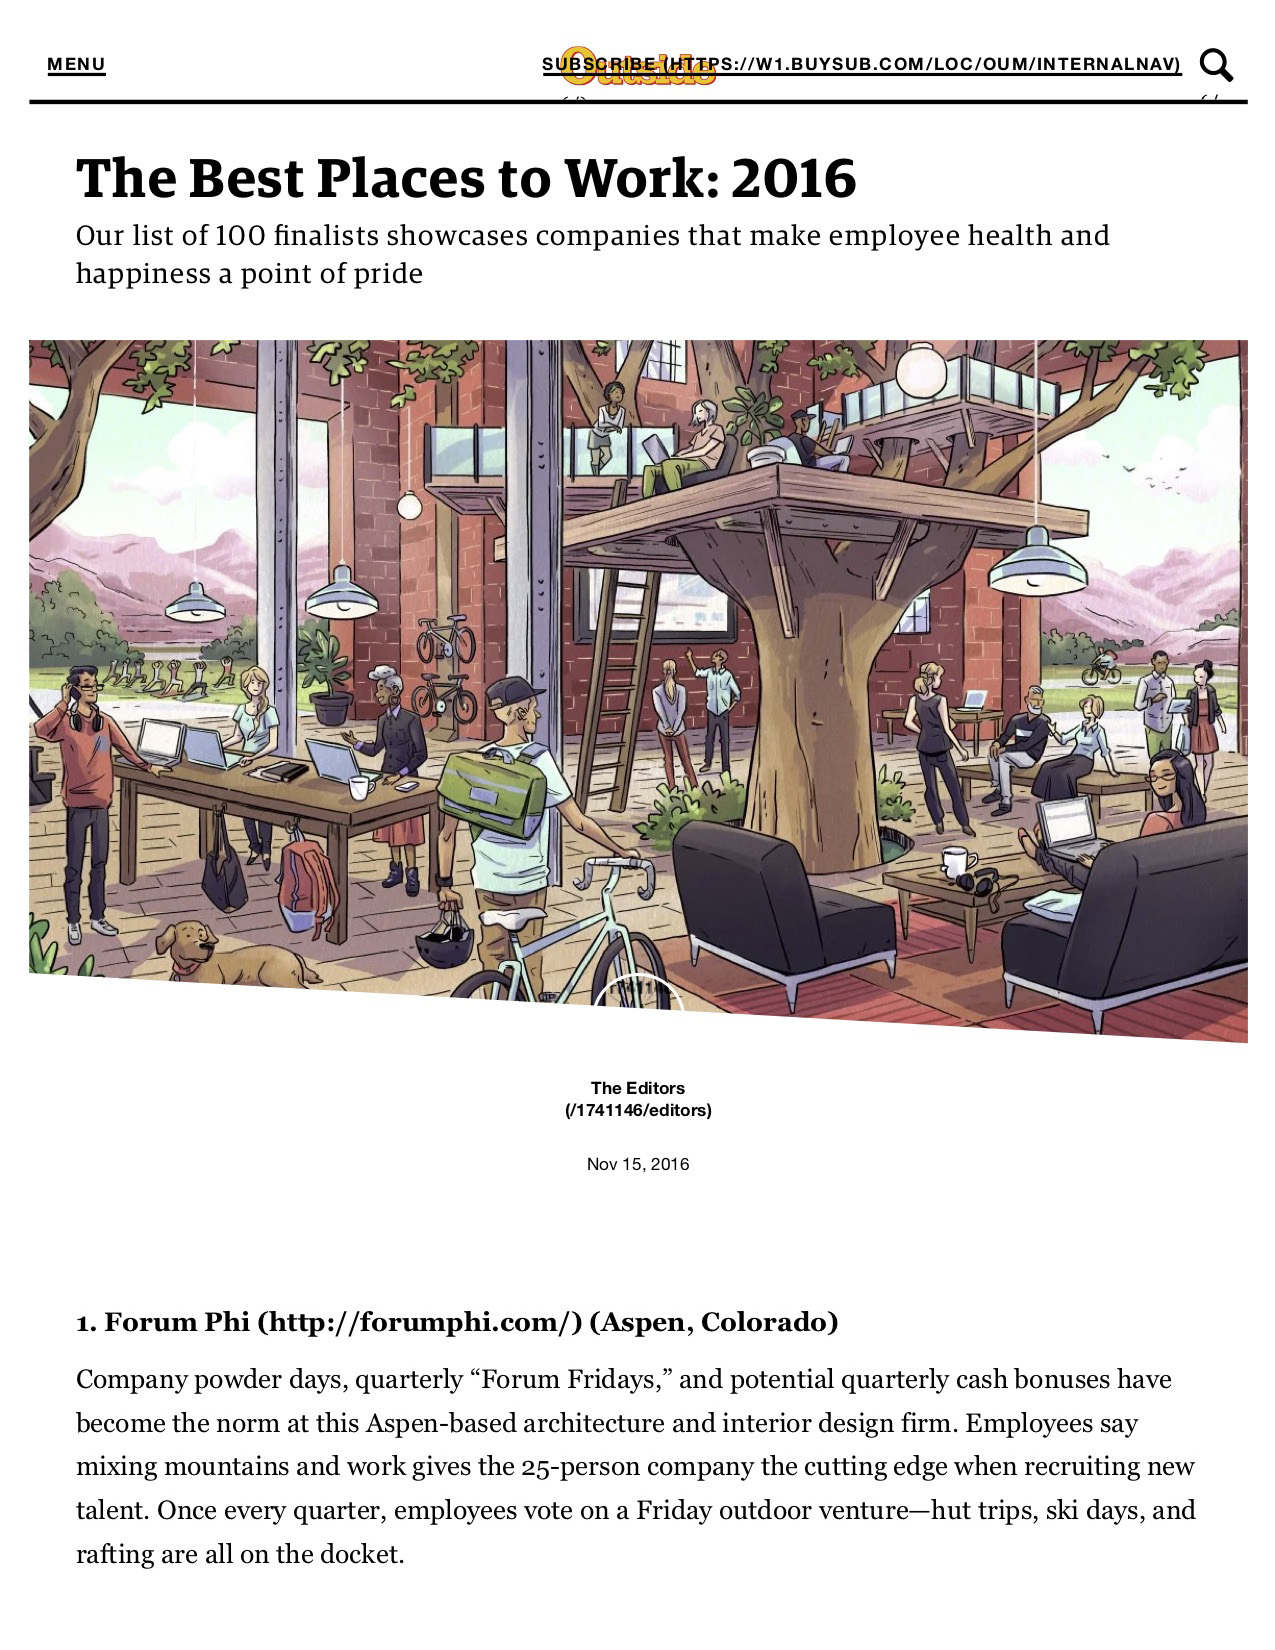 The Best Places to Work pg1